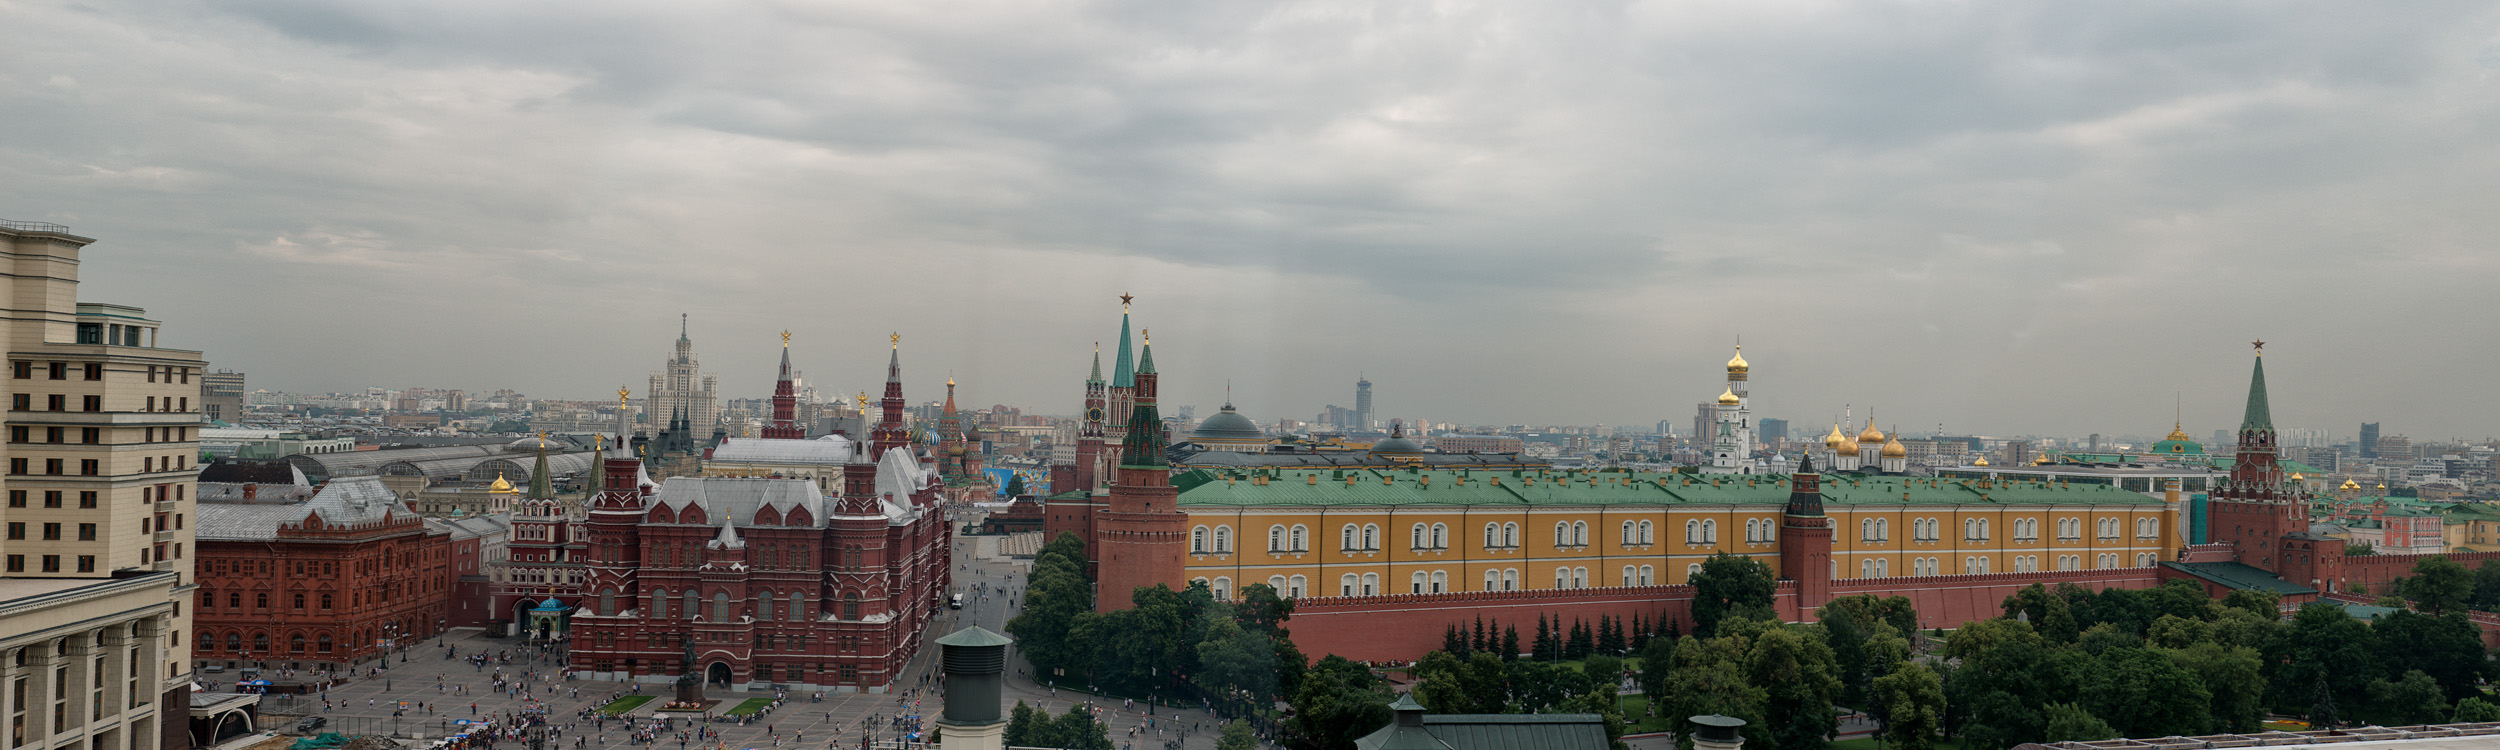 Red Square Skyline